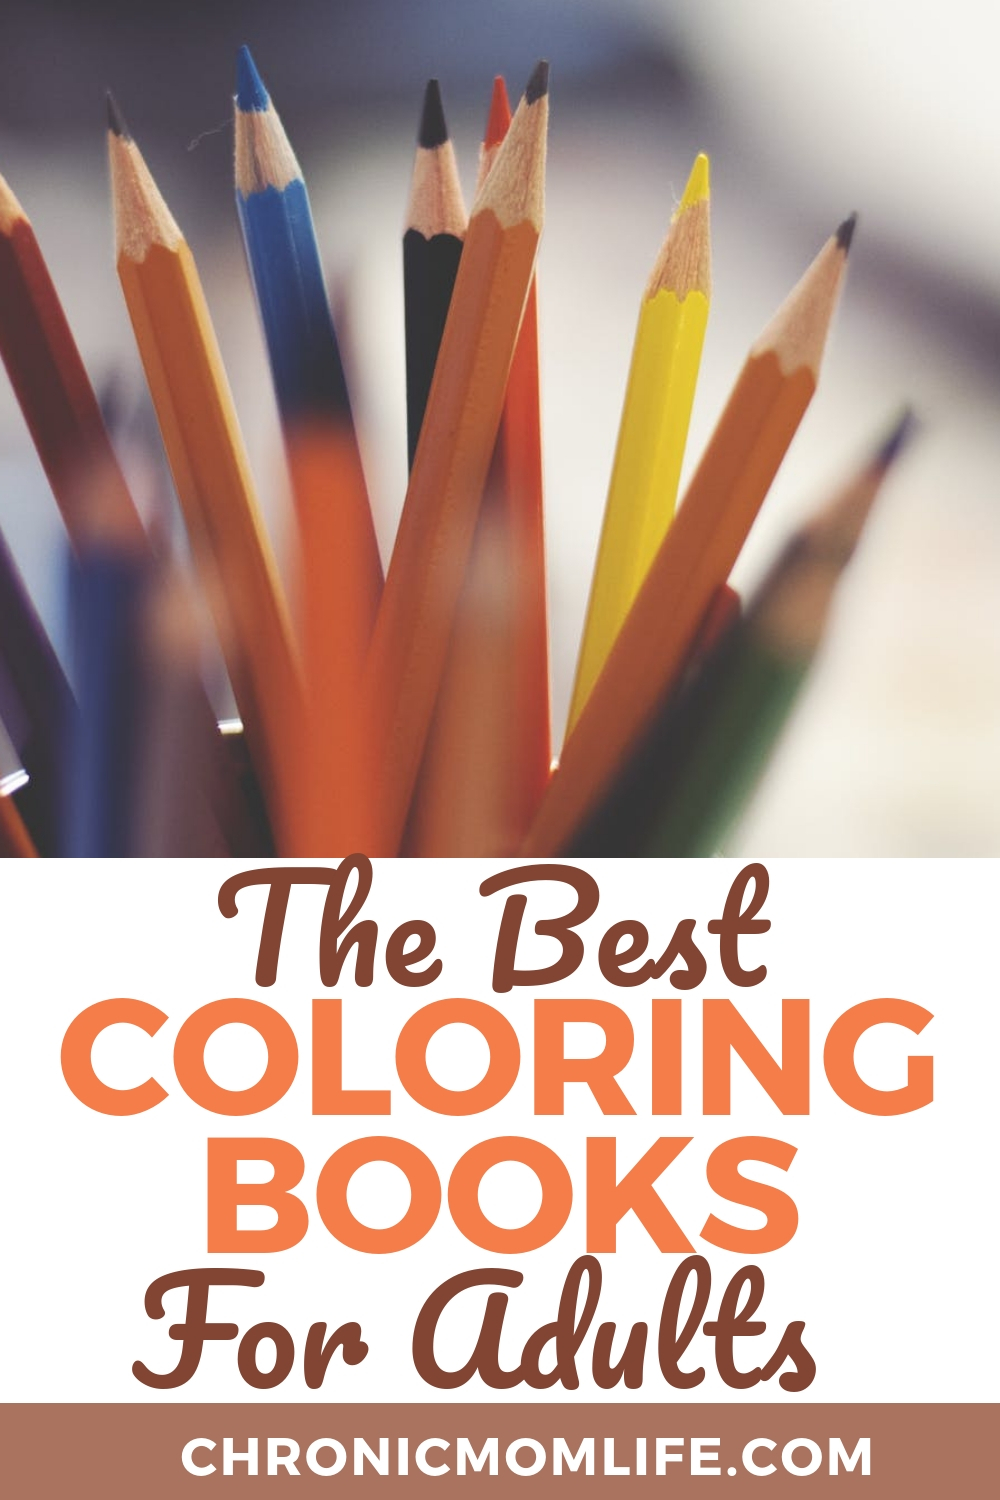 The best coloring books for adults #bulletjournal #coloring #therapy